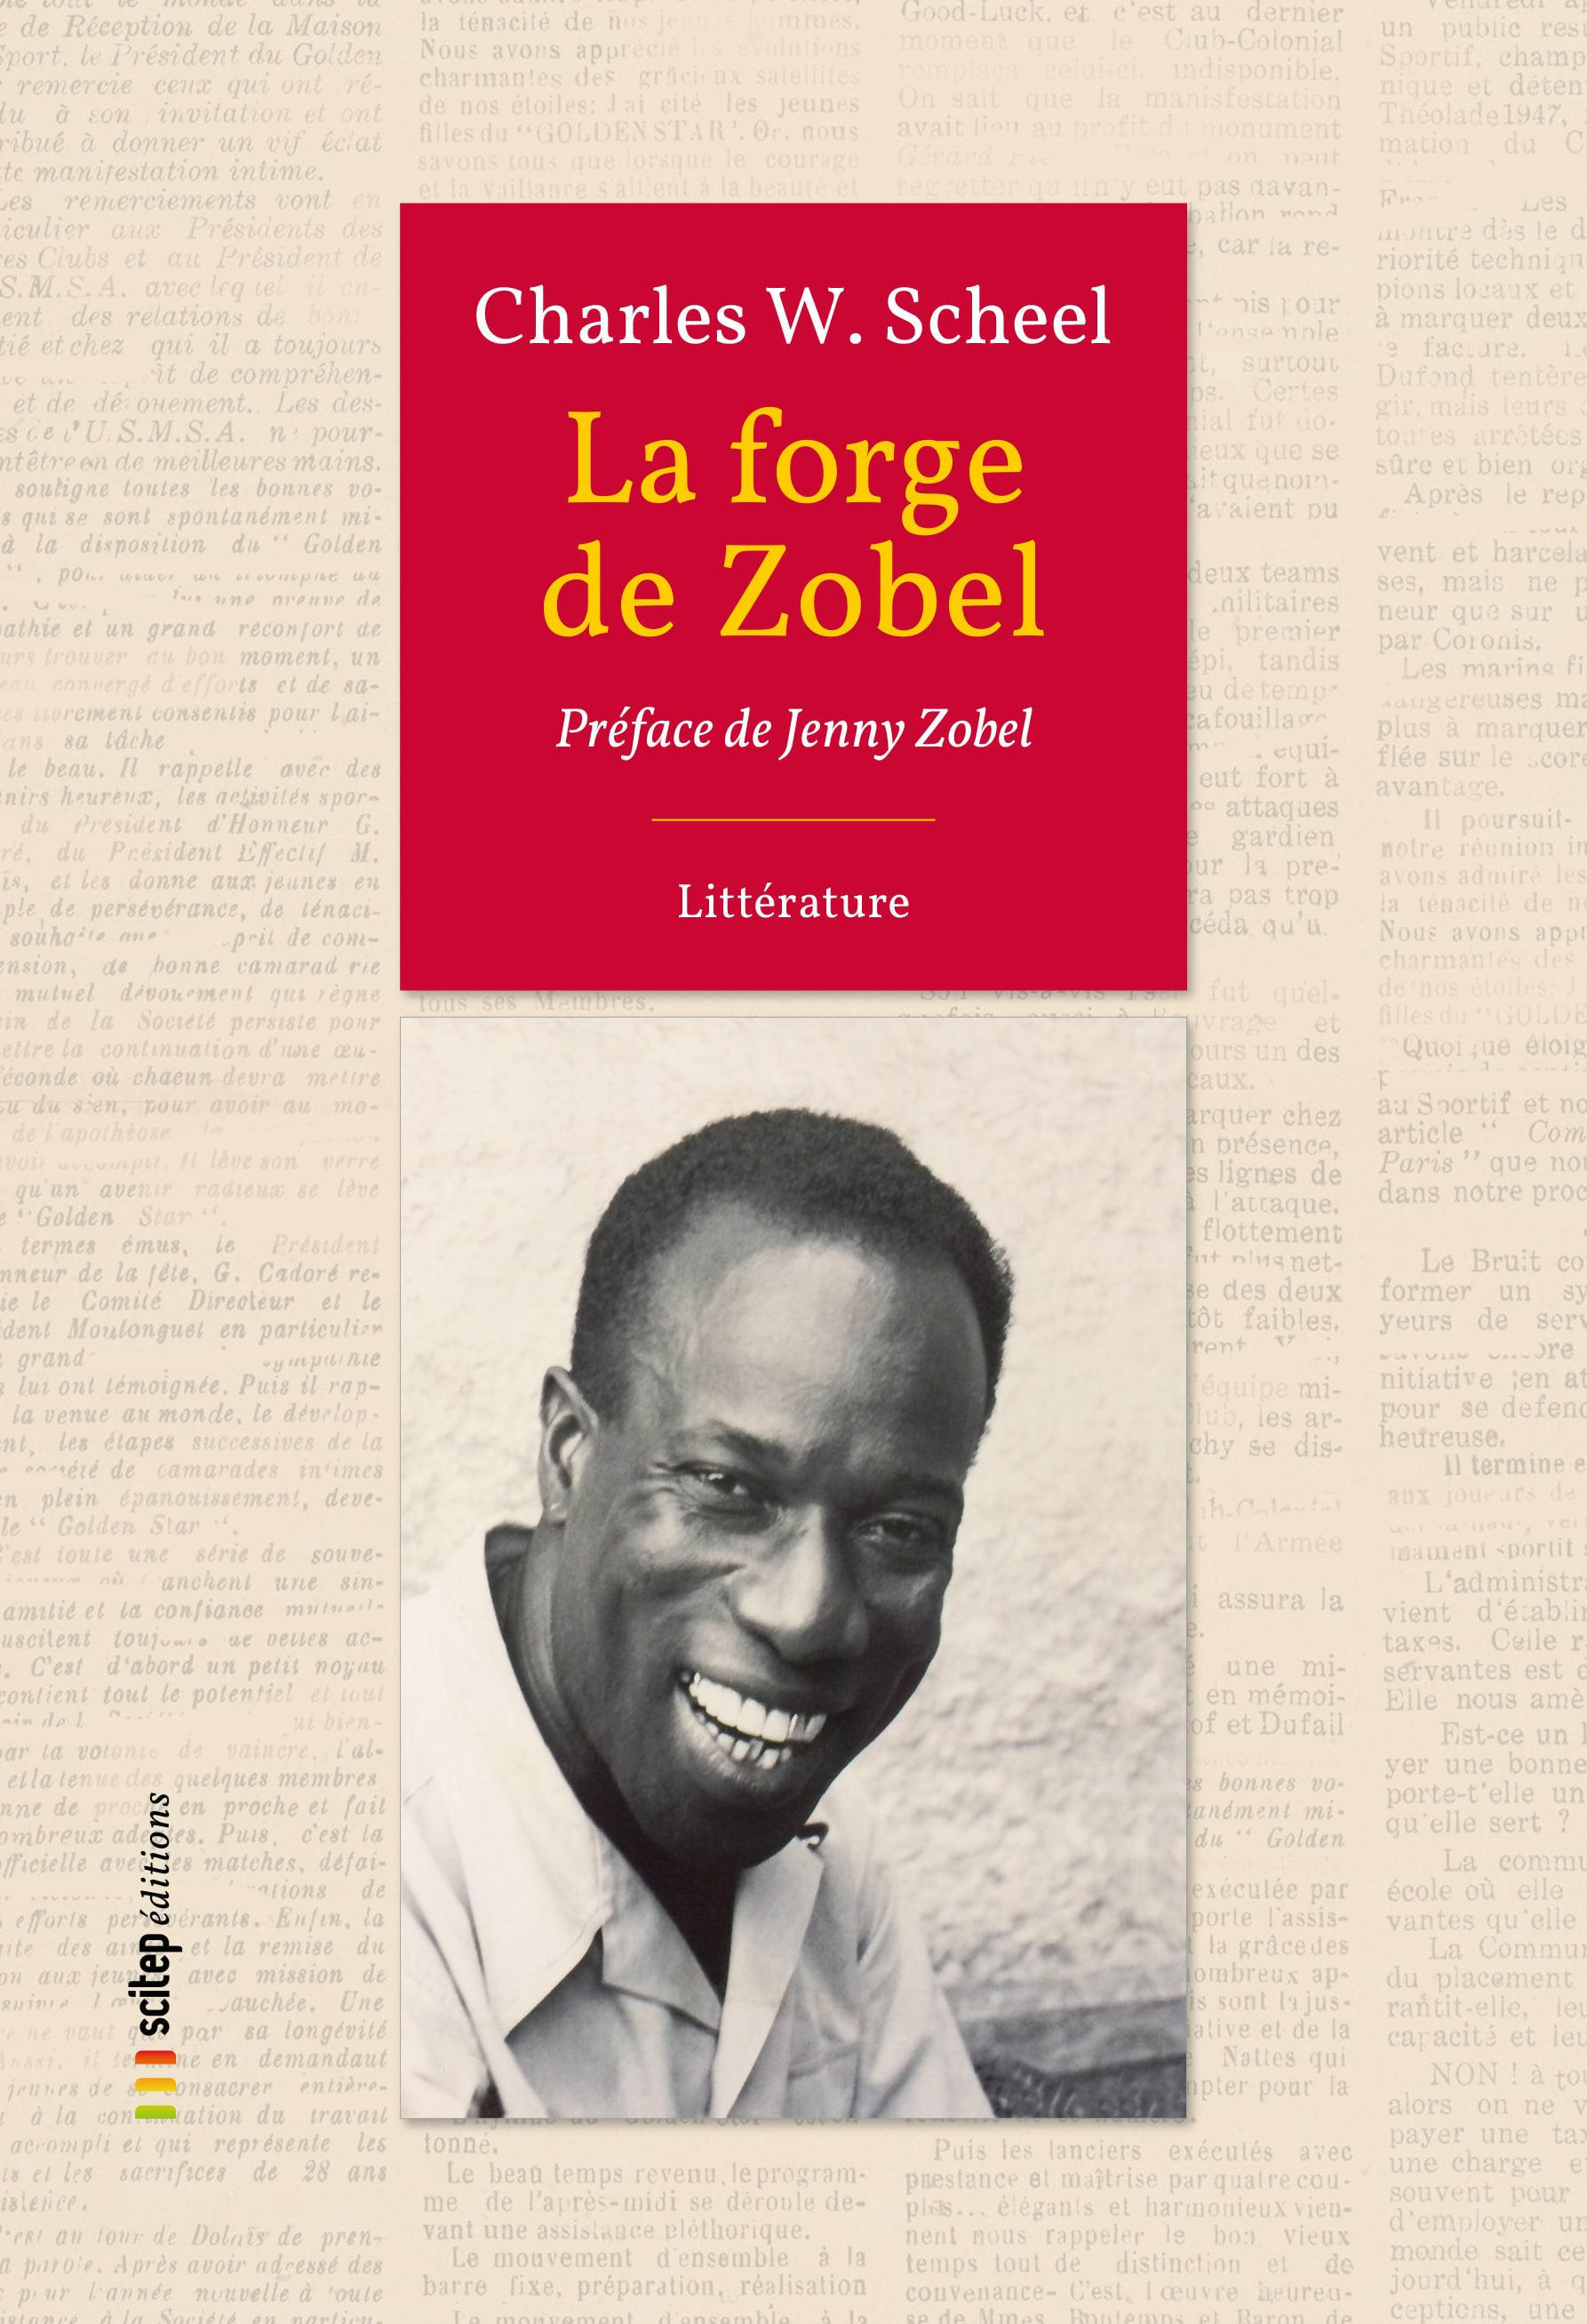 1re de couverture La forge de Zobel Scitep Charles Scheel